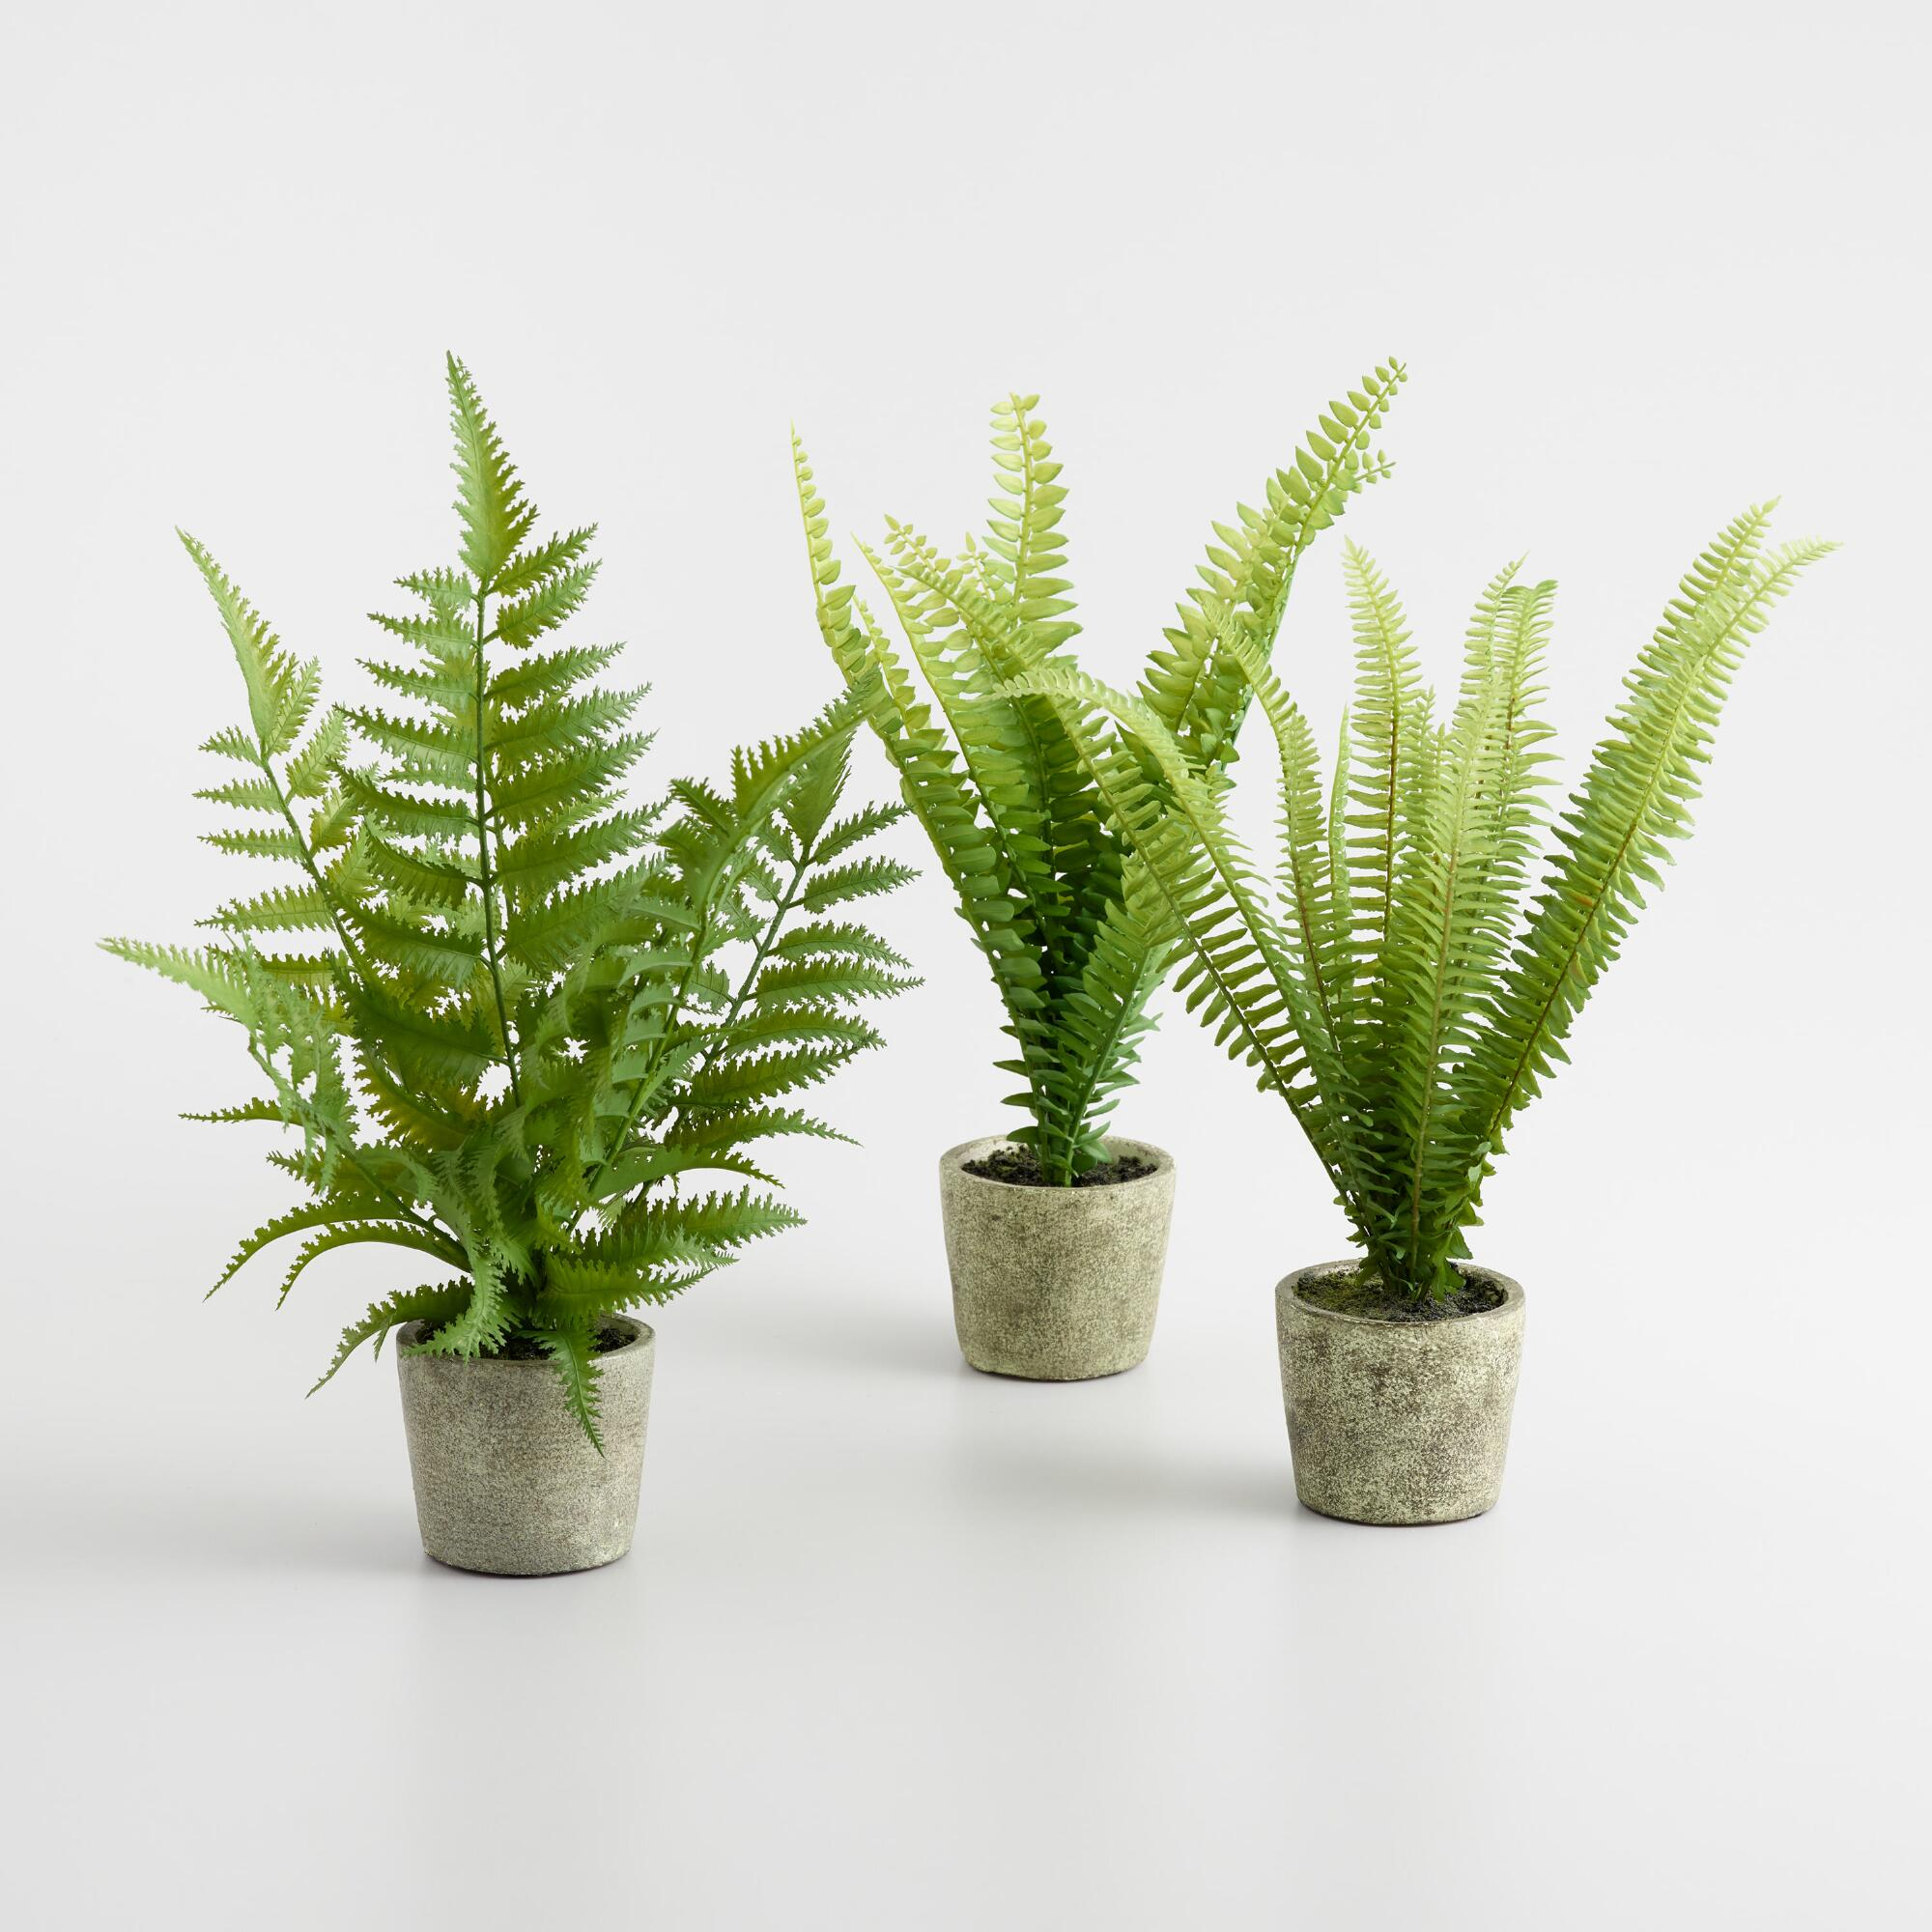 Mini Faux Ferns in Gray Pots Set of 3 by World Market